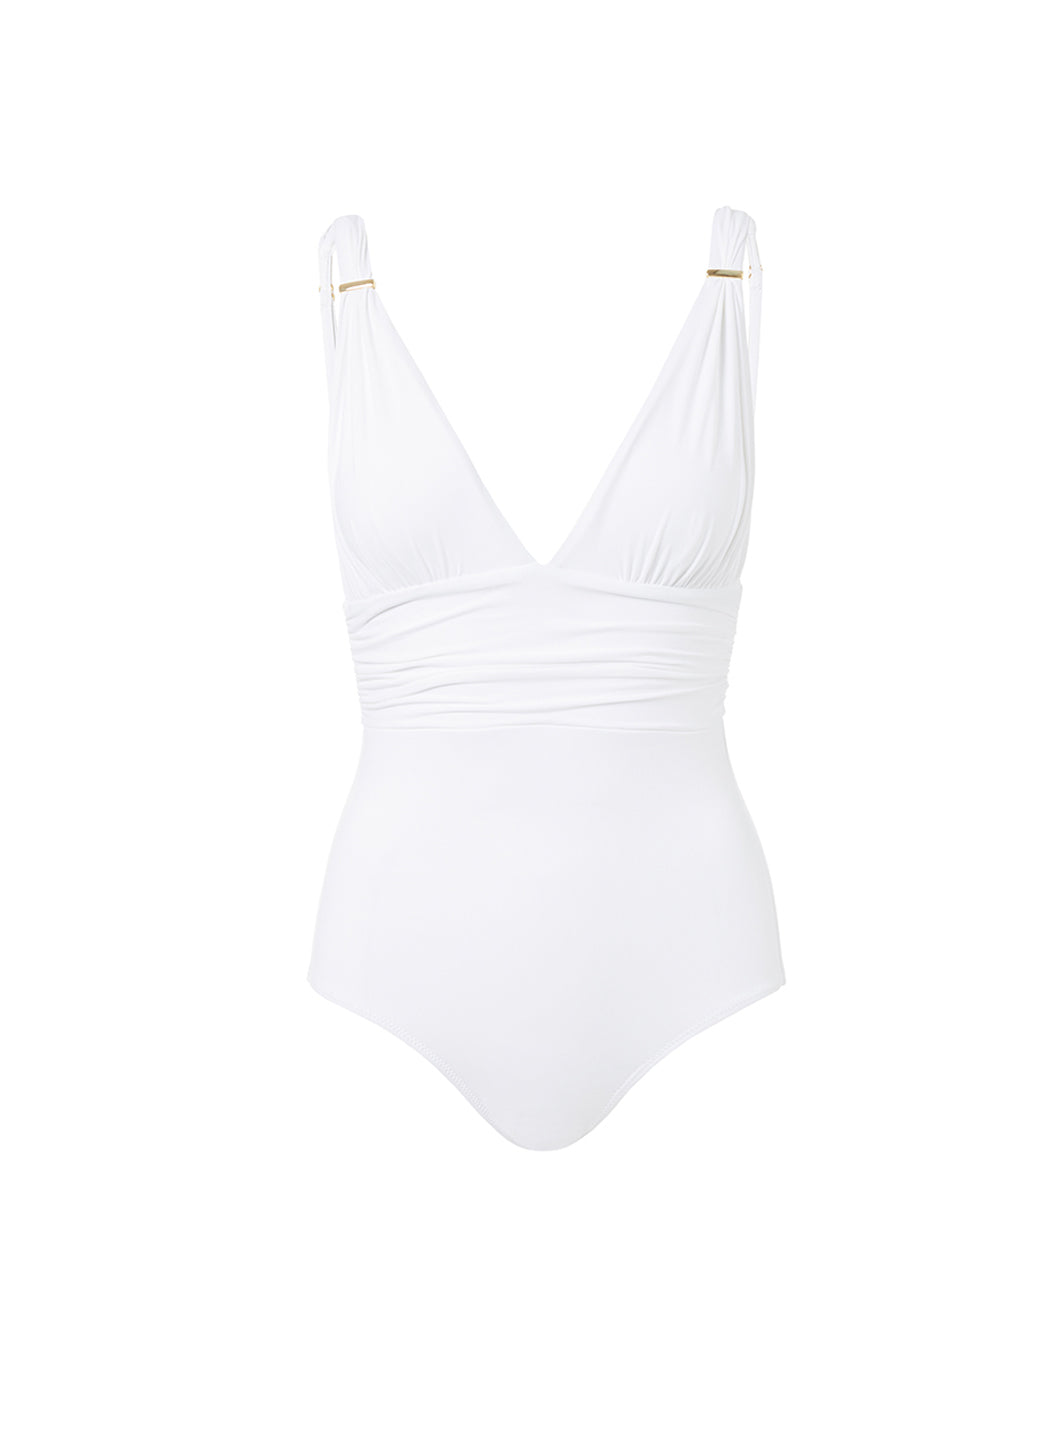 Panarea White Classic Over The Shoulder Ruched Swimsuit - Melissa Odabash One Piece